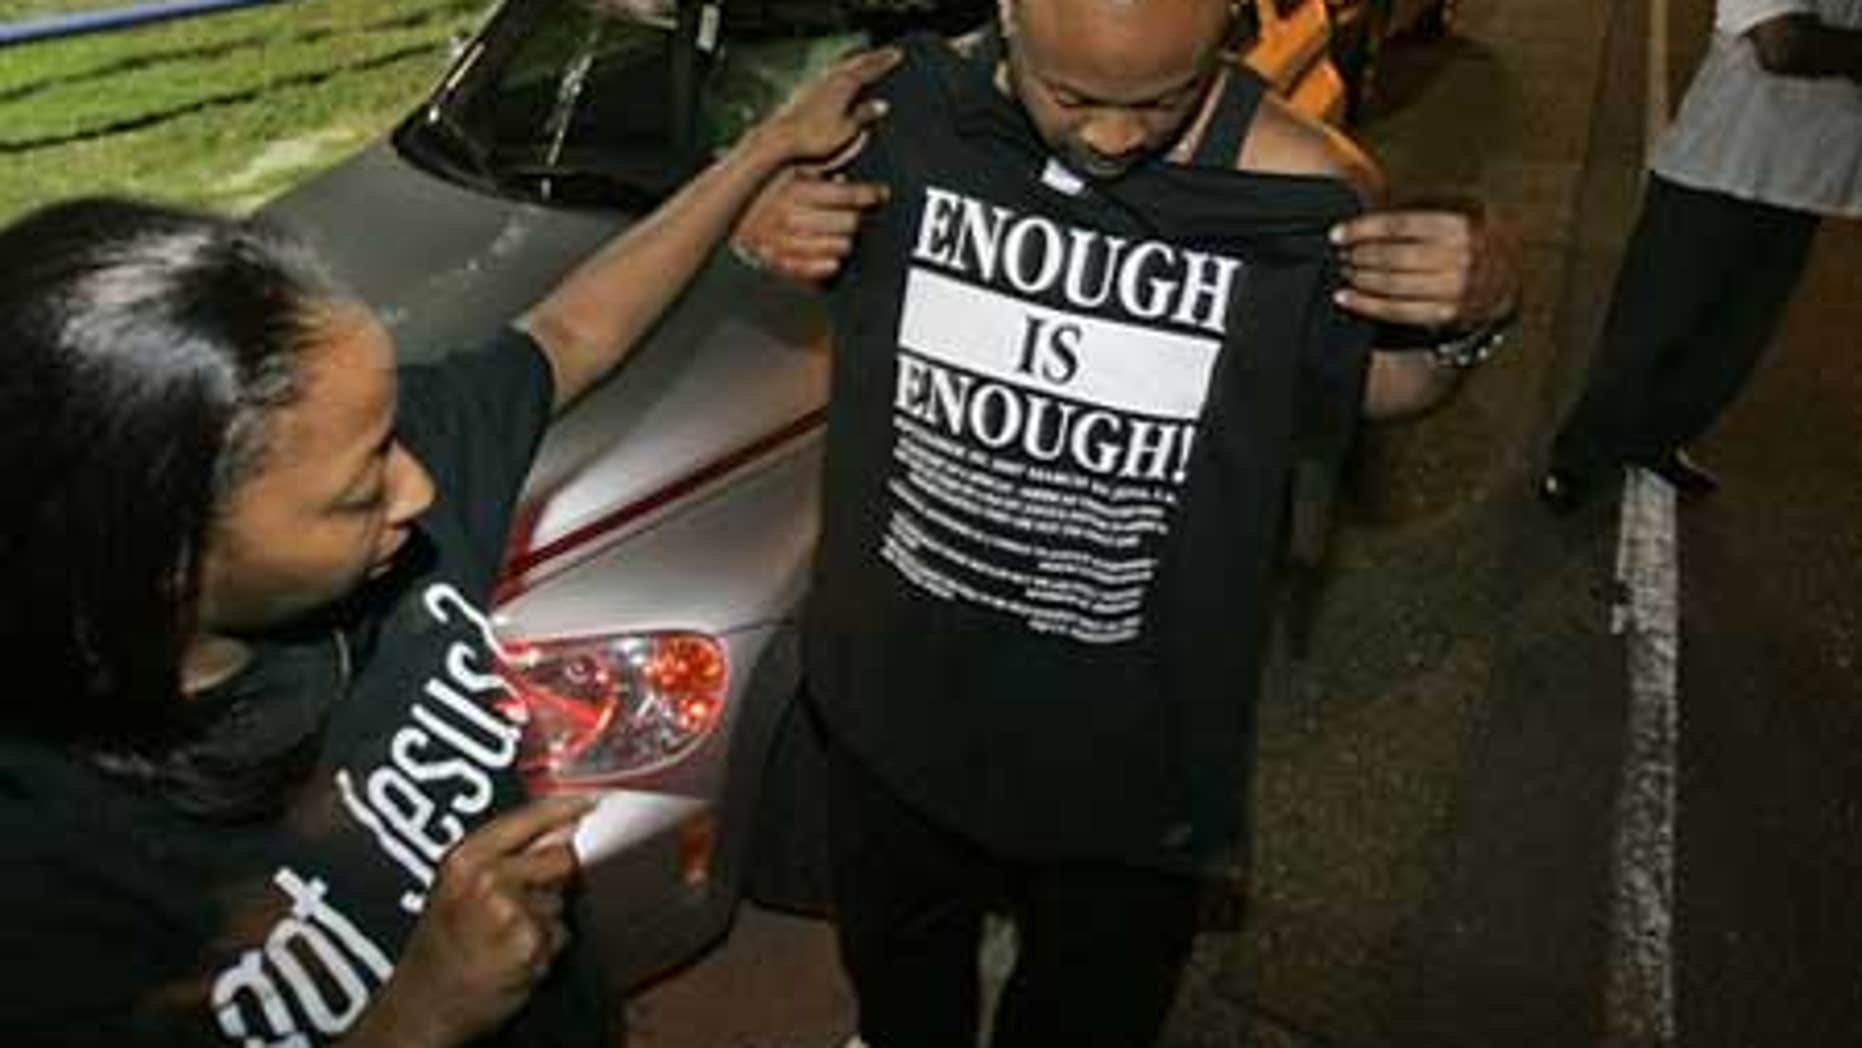 Sept. 20: Andrea Blalock, left, checks out a shirt for her husband Thomas Blalock, both from Stockbridge, Ga. as they prepare for a rally to protest the arrest of the 'Jena 6'in Louisiana. The youngest of the six was released Thursday.